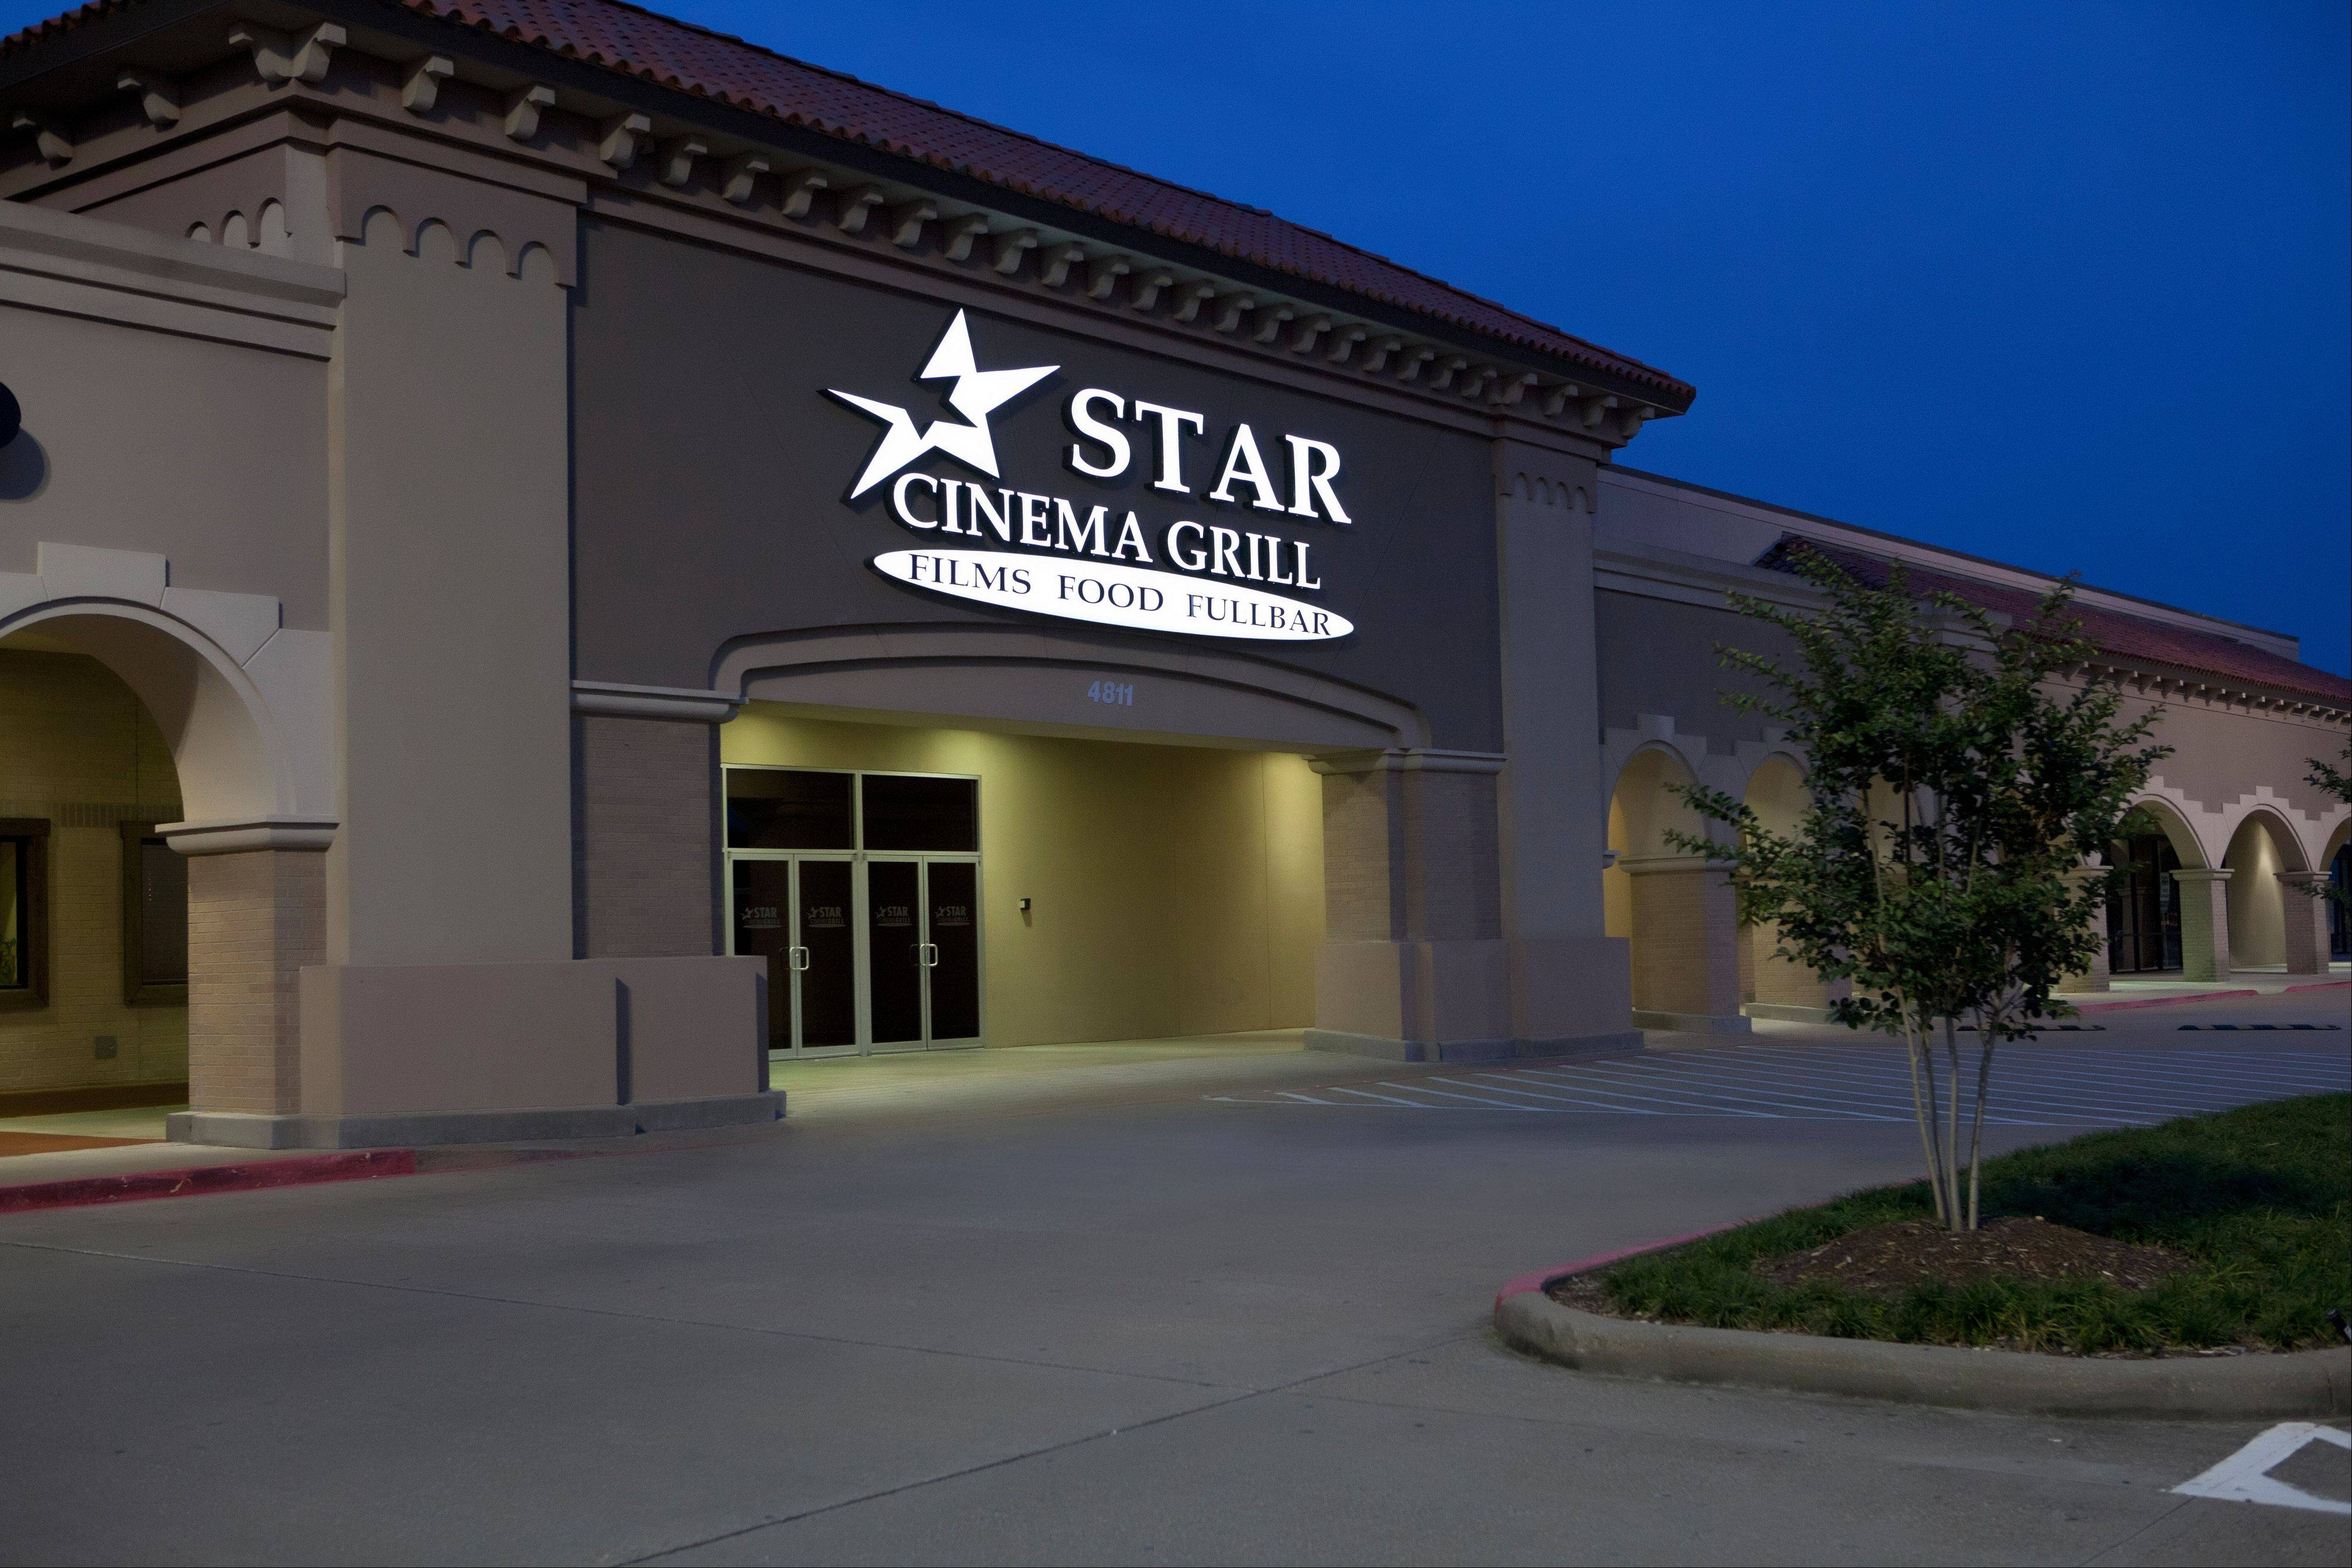 A new dine-in restaurant/theater similar to this Star Cinema Grill location in Texas will be opening in Arlington Heights later this year.